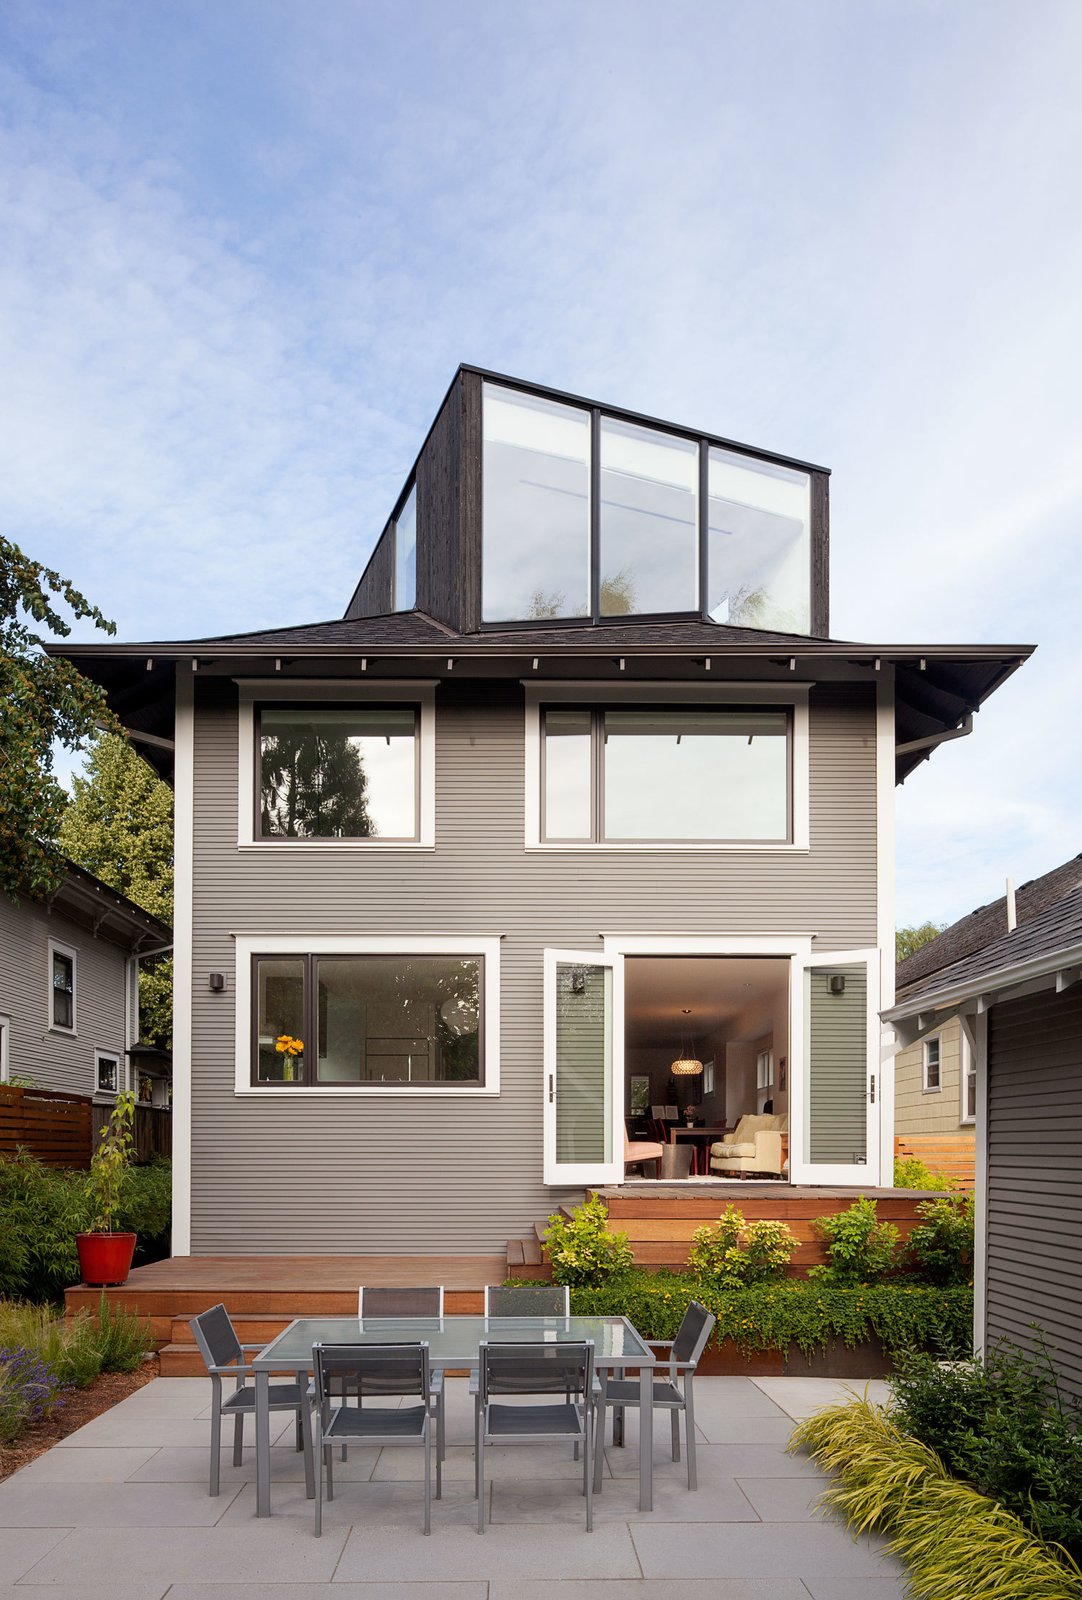 """Thomas Robinson of LEVER Architecture restored the exterior of the house in order to resurface the original wood facade, which had been covered up by vinyl siding at one point. They turned the unused attic into a """"FifthSquare"""": a box-like structure that acts as an office and mini-theater, complete with a ceiling-mounted projector and drop-down screen. The exterior of the extension is clad with charred cedar, which integrates smoothly into the asphalt shingle roof.  house pics"""